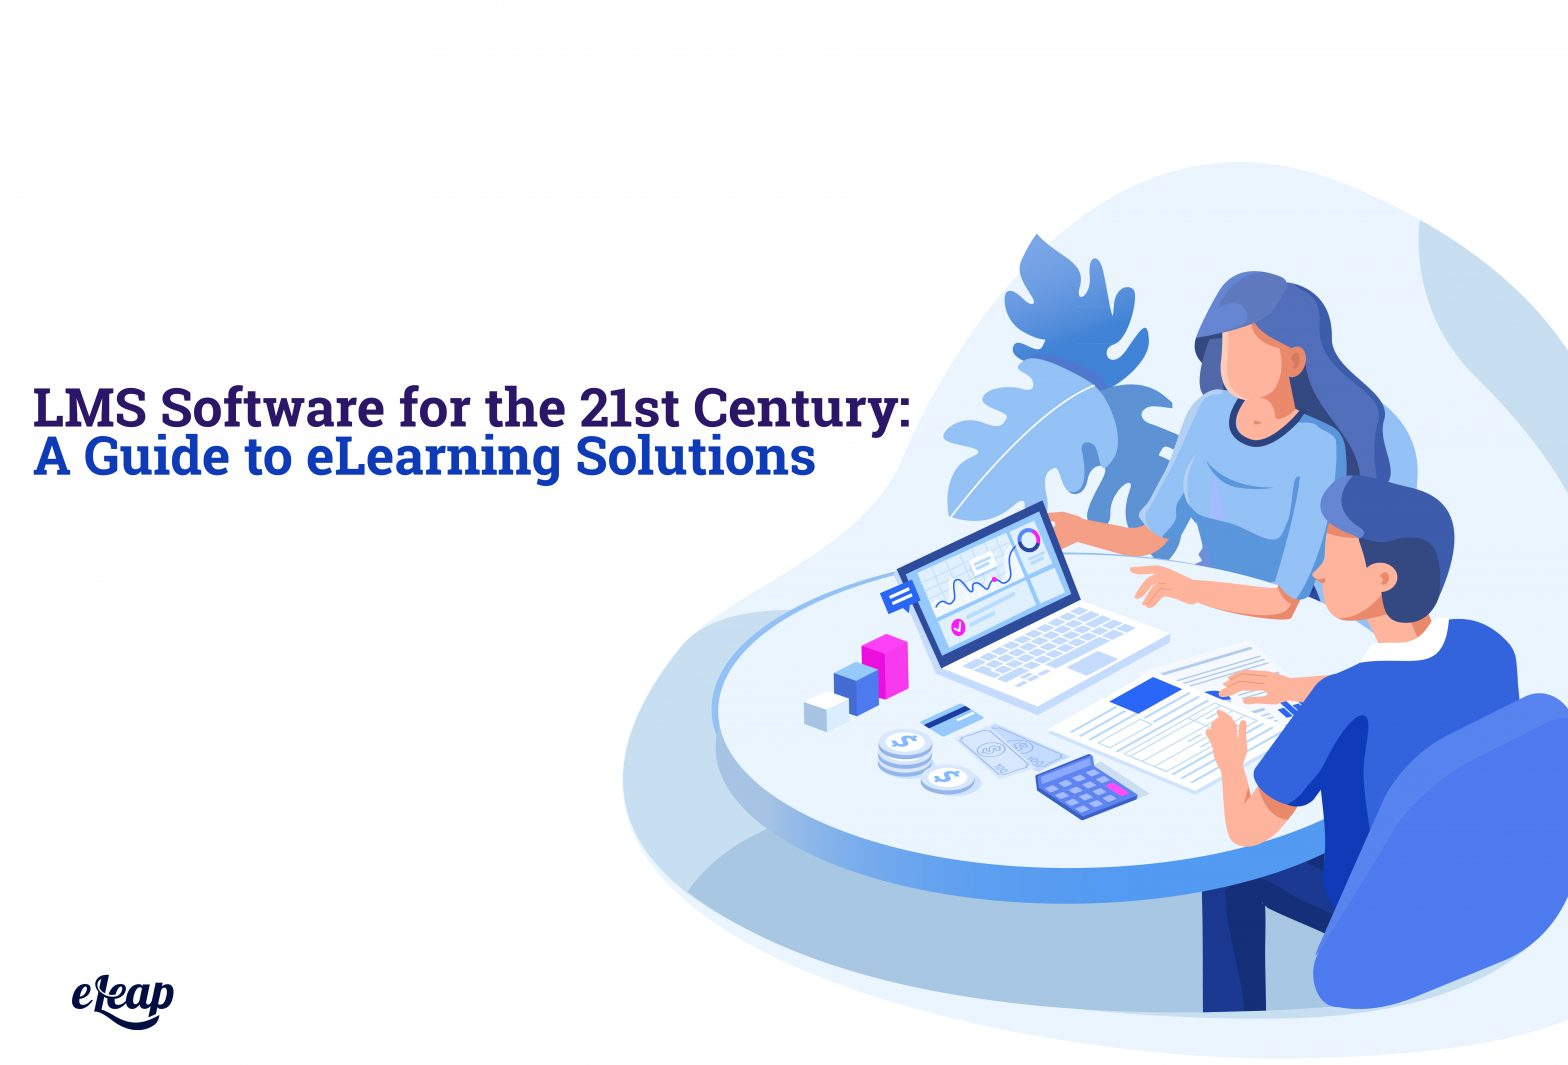 LMS Software for the 21st Century: A Guide to eLearning Solutions